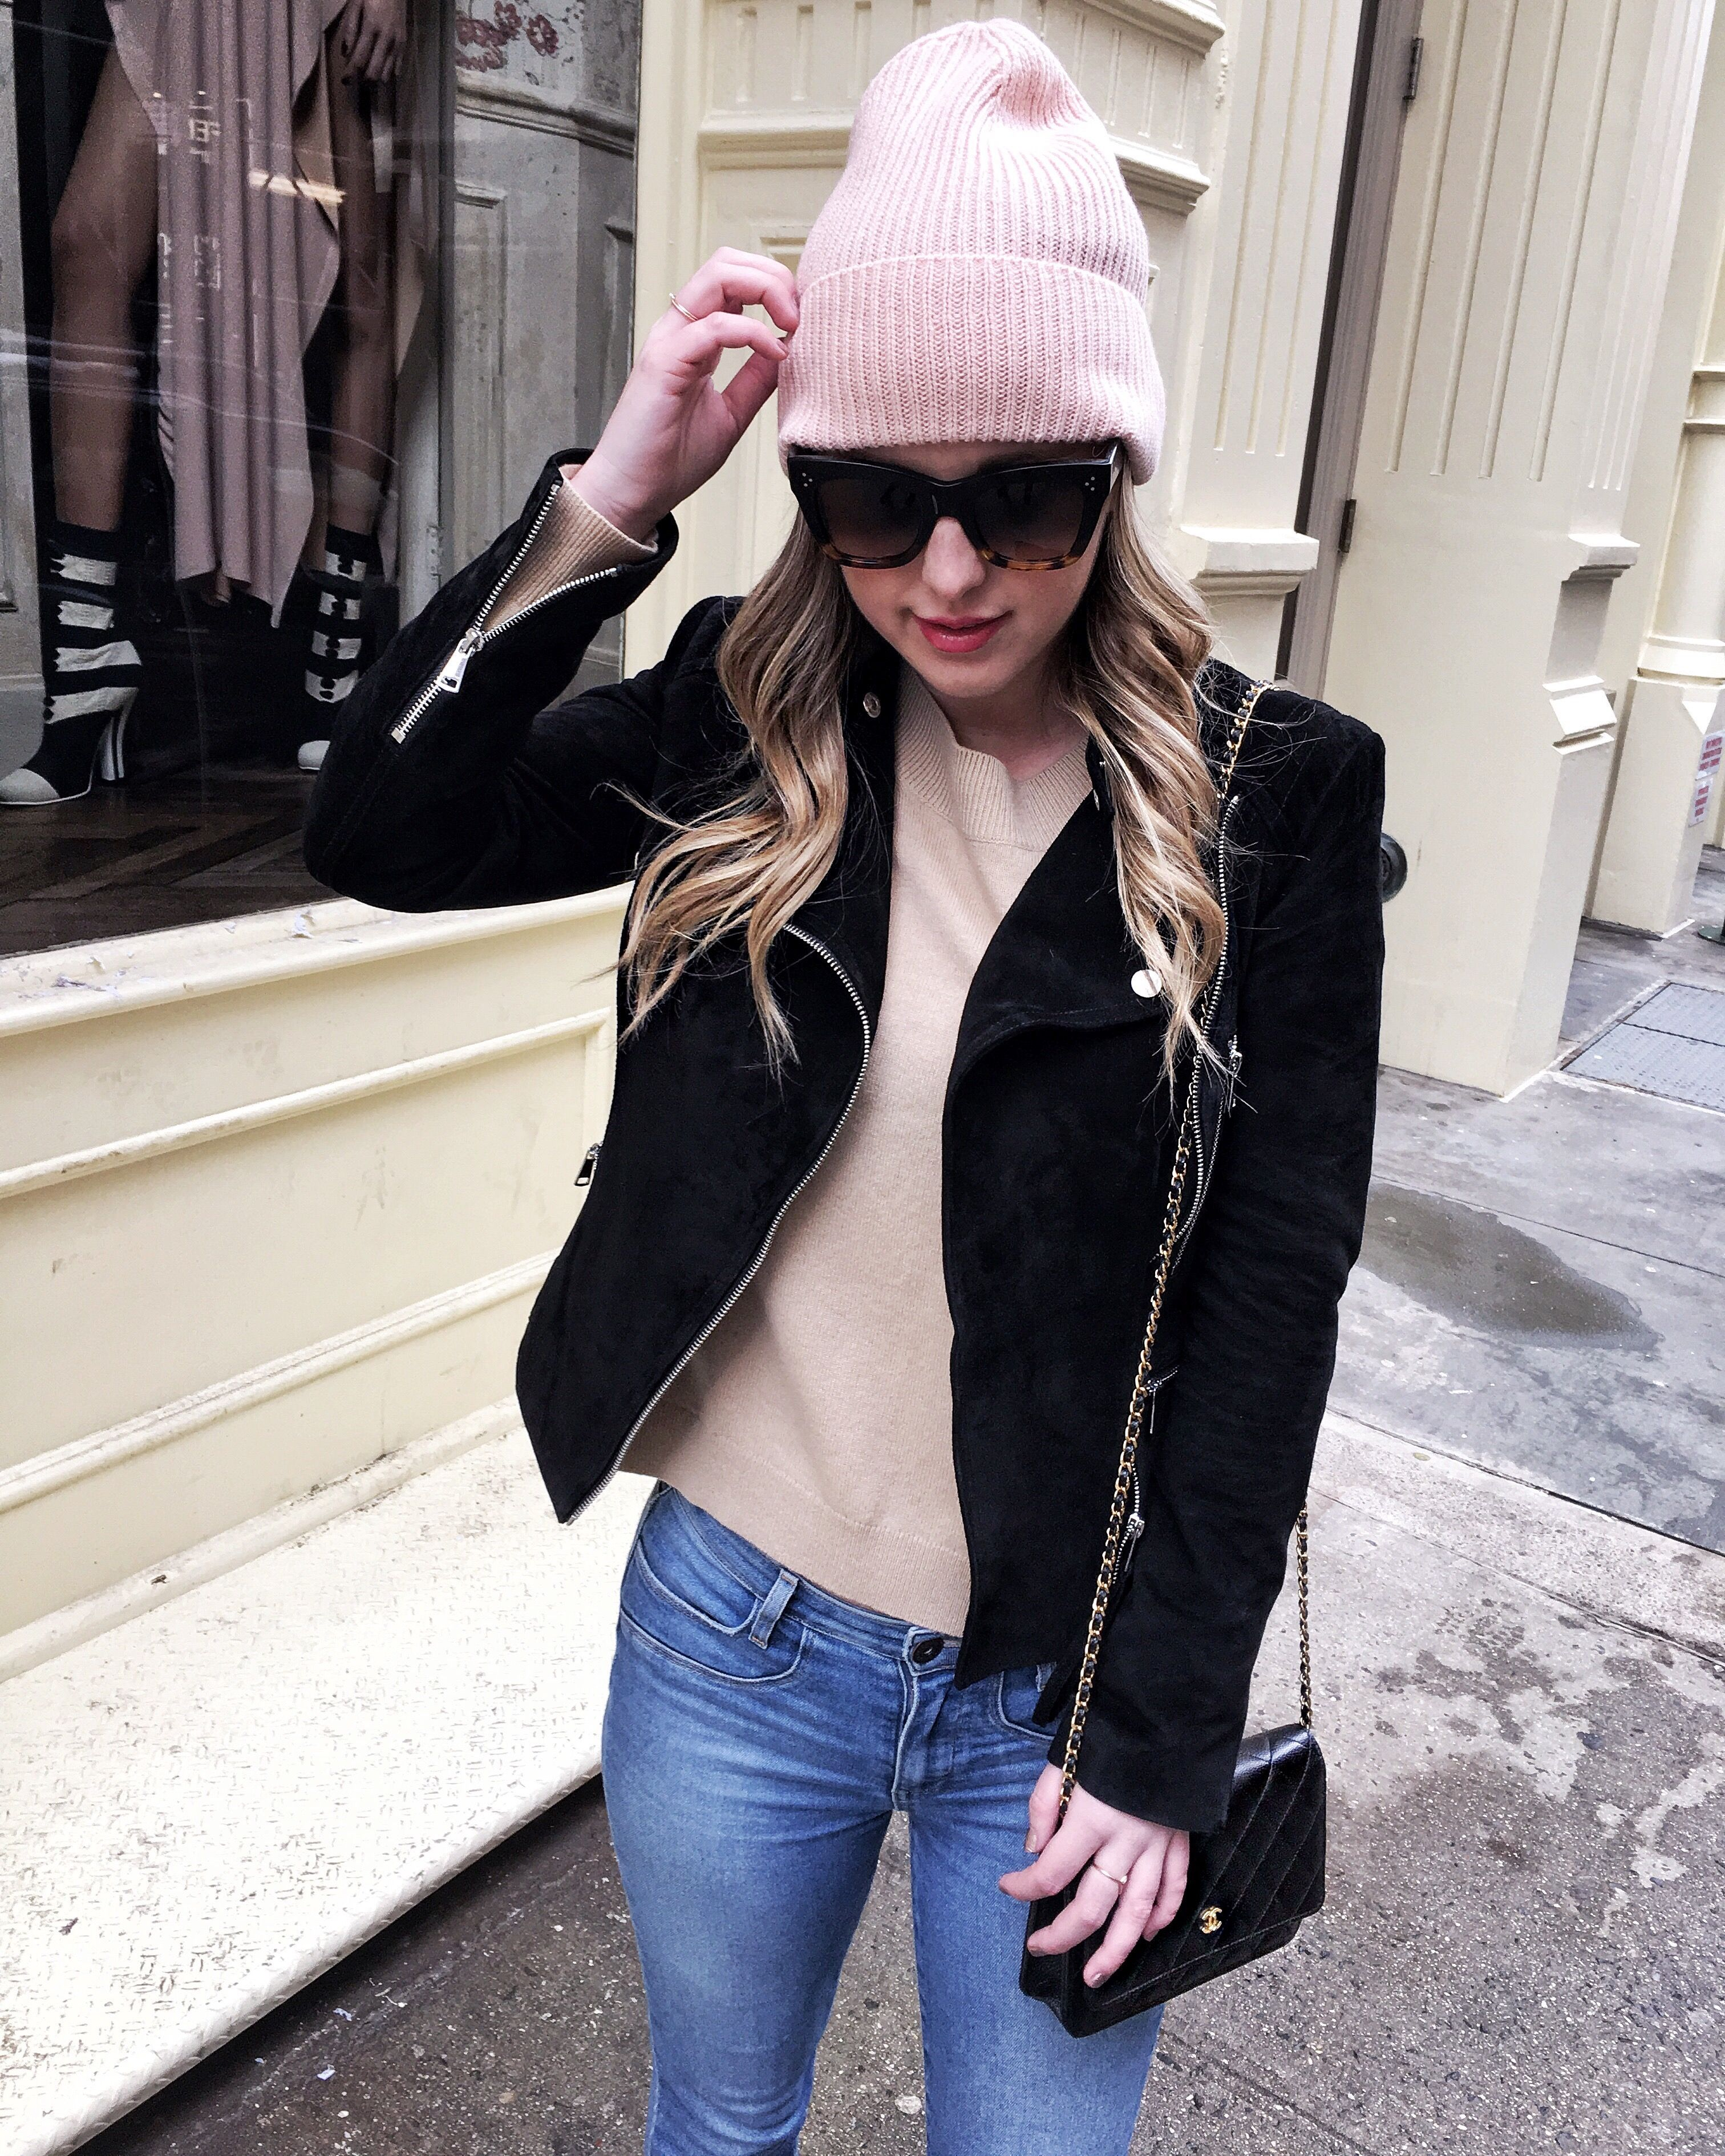 9eba5bfbf61 ... united states cb4bd 3ded9 Miami Blogger Outfit Inspiration NYFW  Instagram Recap Winter Fashion Pink Beanie  recognized brands 1cc9c 12dce  Chanel ...